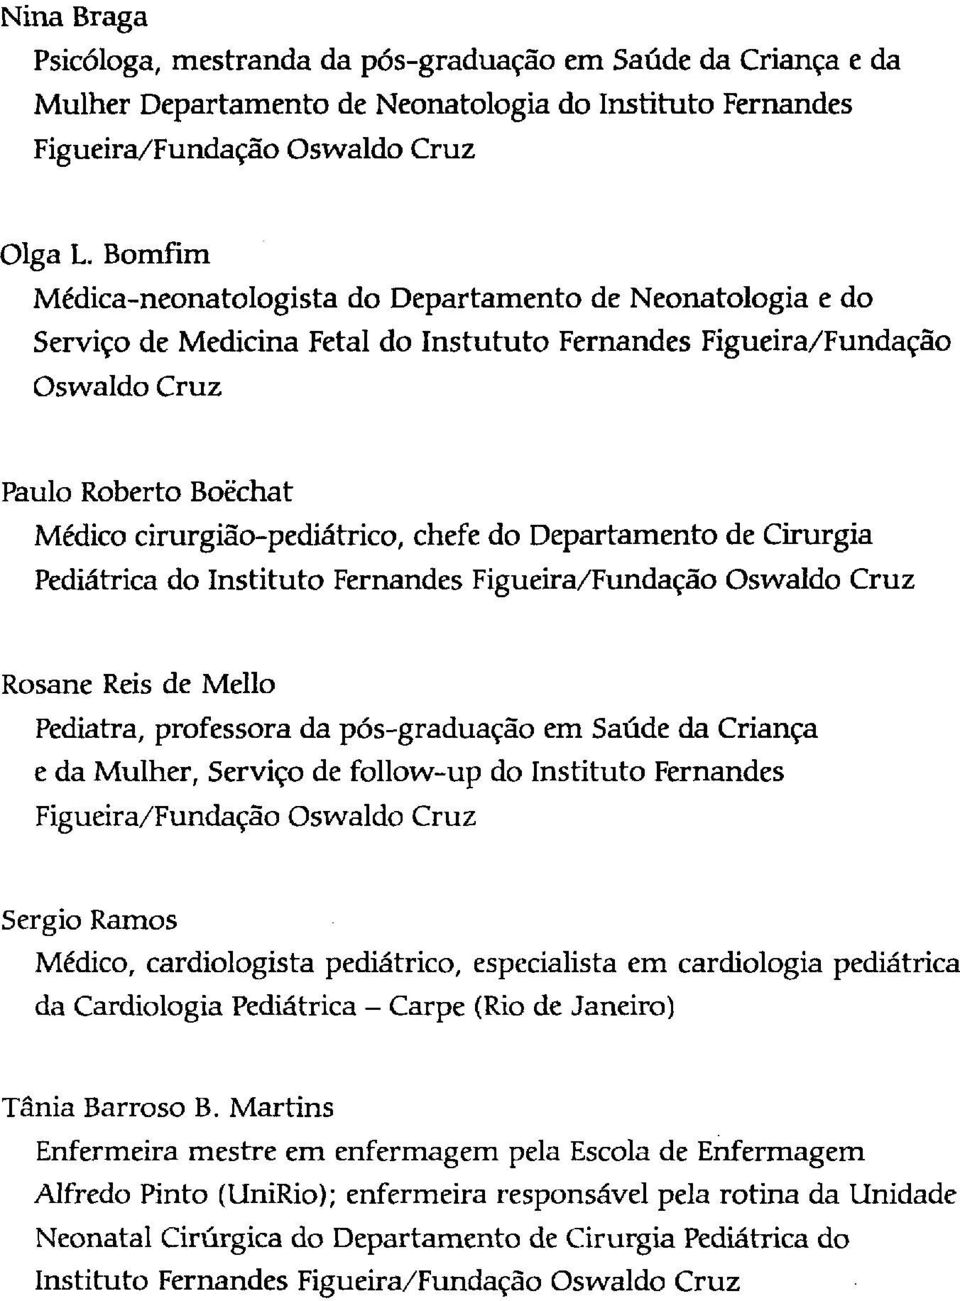 chefe do Departamento de Cirurgia Pediátrica do Instituto Fernandes Figueira/Fundação Oswaldo Cruz Rosane Reis de Mello Pediatra, professora da pós-graduação em Saúde da Criança e da Mulher, Serviço